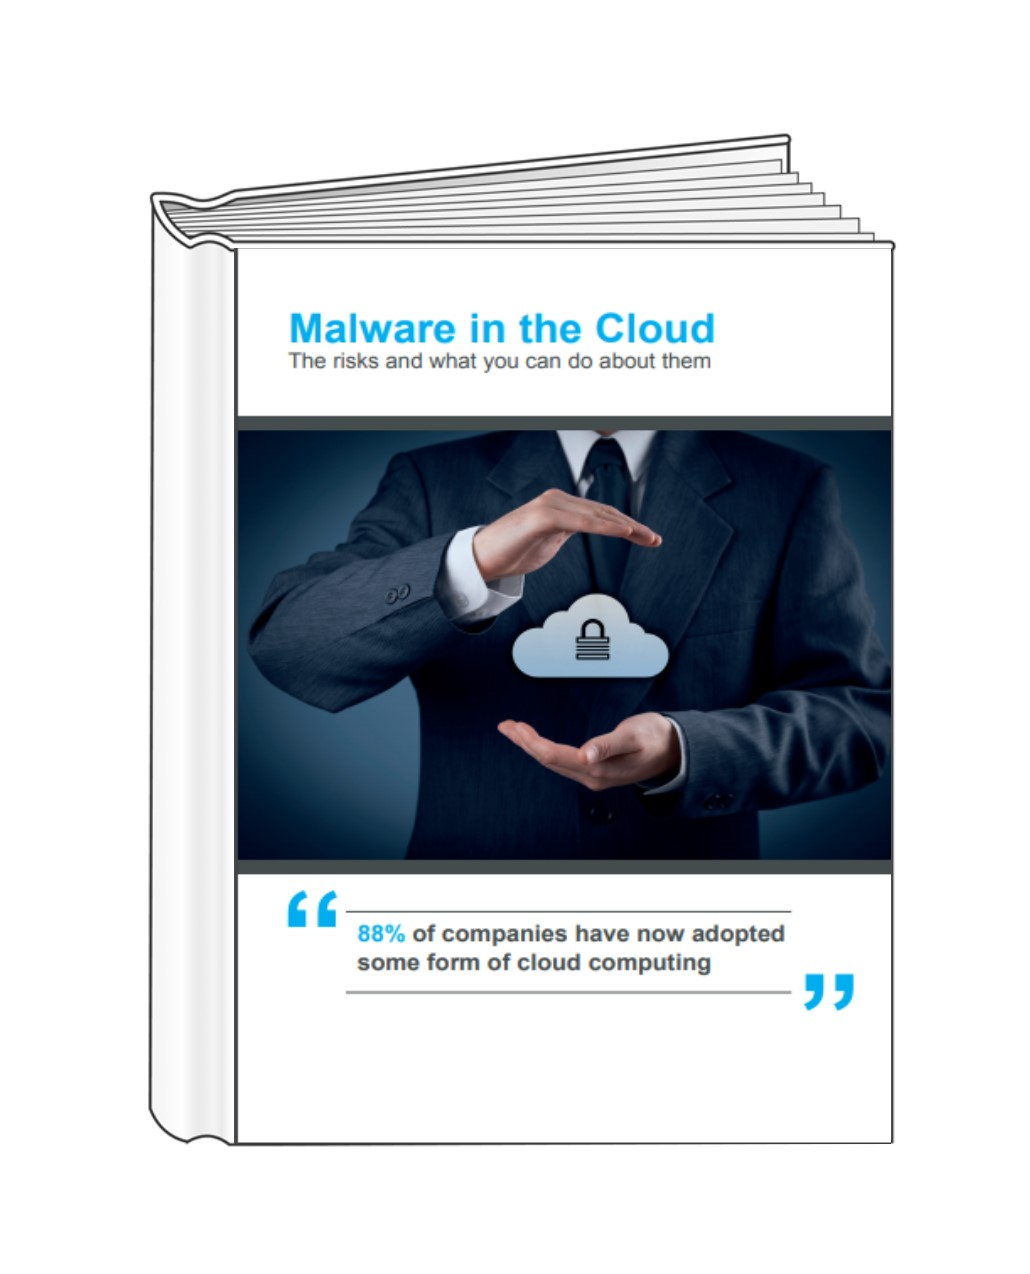 picture of the malware in the cloud pdf